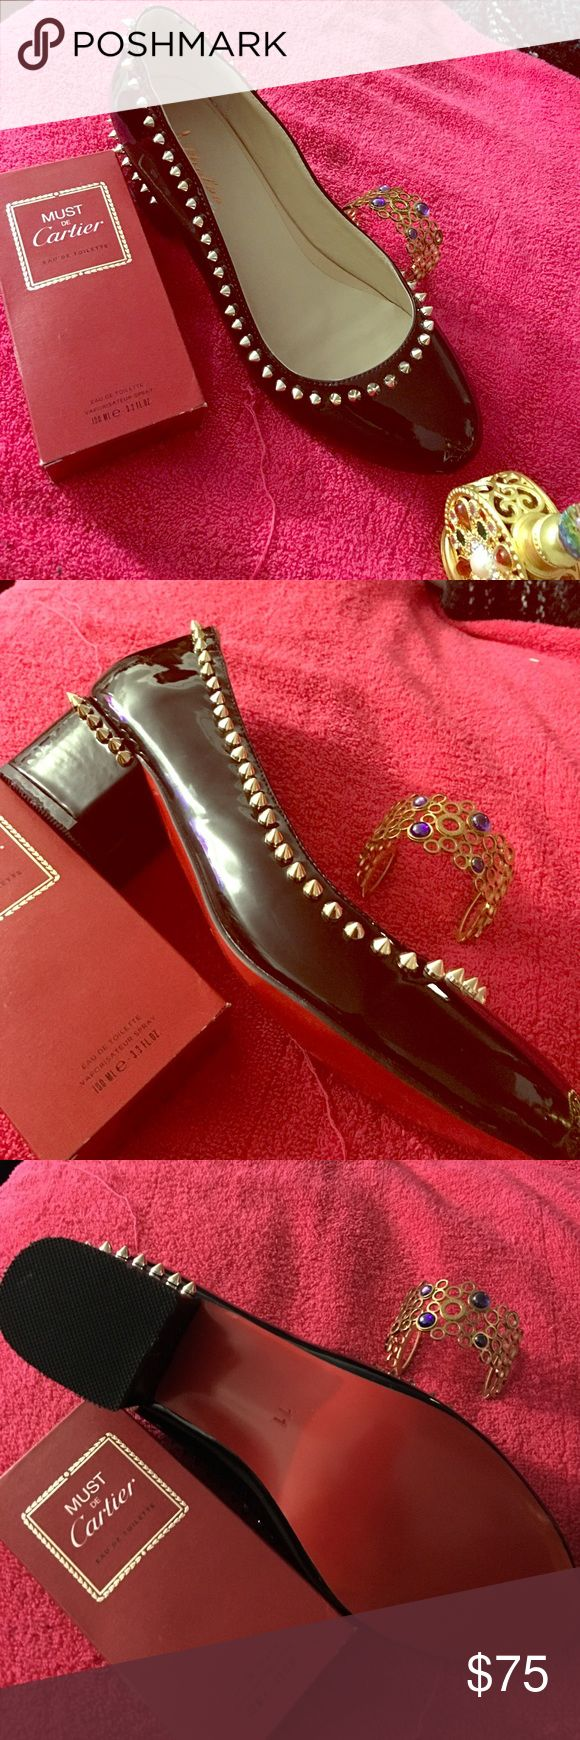 Black shoes with spikes and red soles Black shoes with spikes and red sole. This shoes were made for me but when I received them I realized the front was too short for me. I don't like to wear shoes that let my toes out. They are made with good leather. Shoes Flats & Loafers